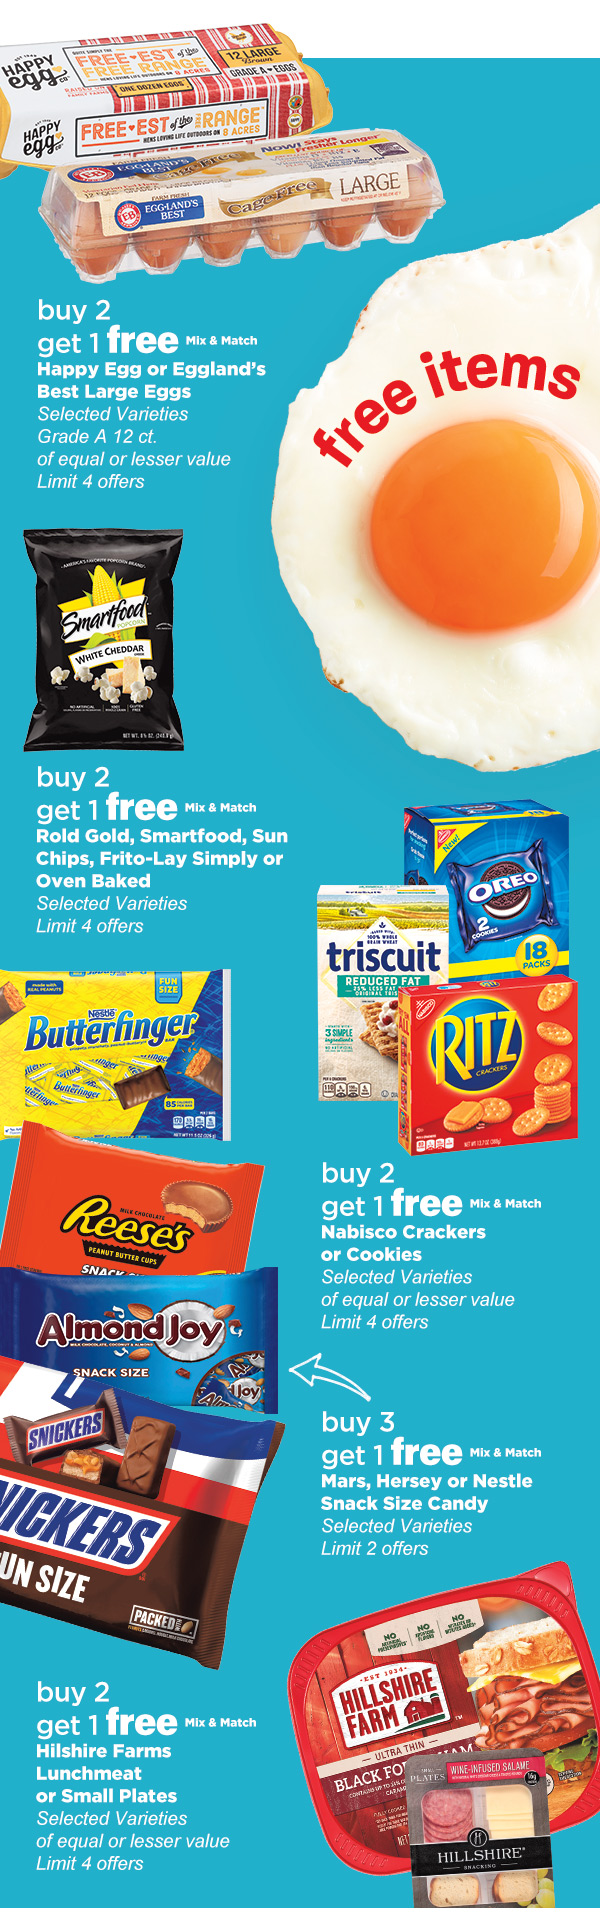 Buy 2 Get 1 Free in Weekly Ad